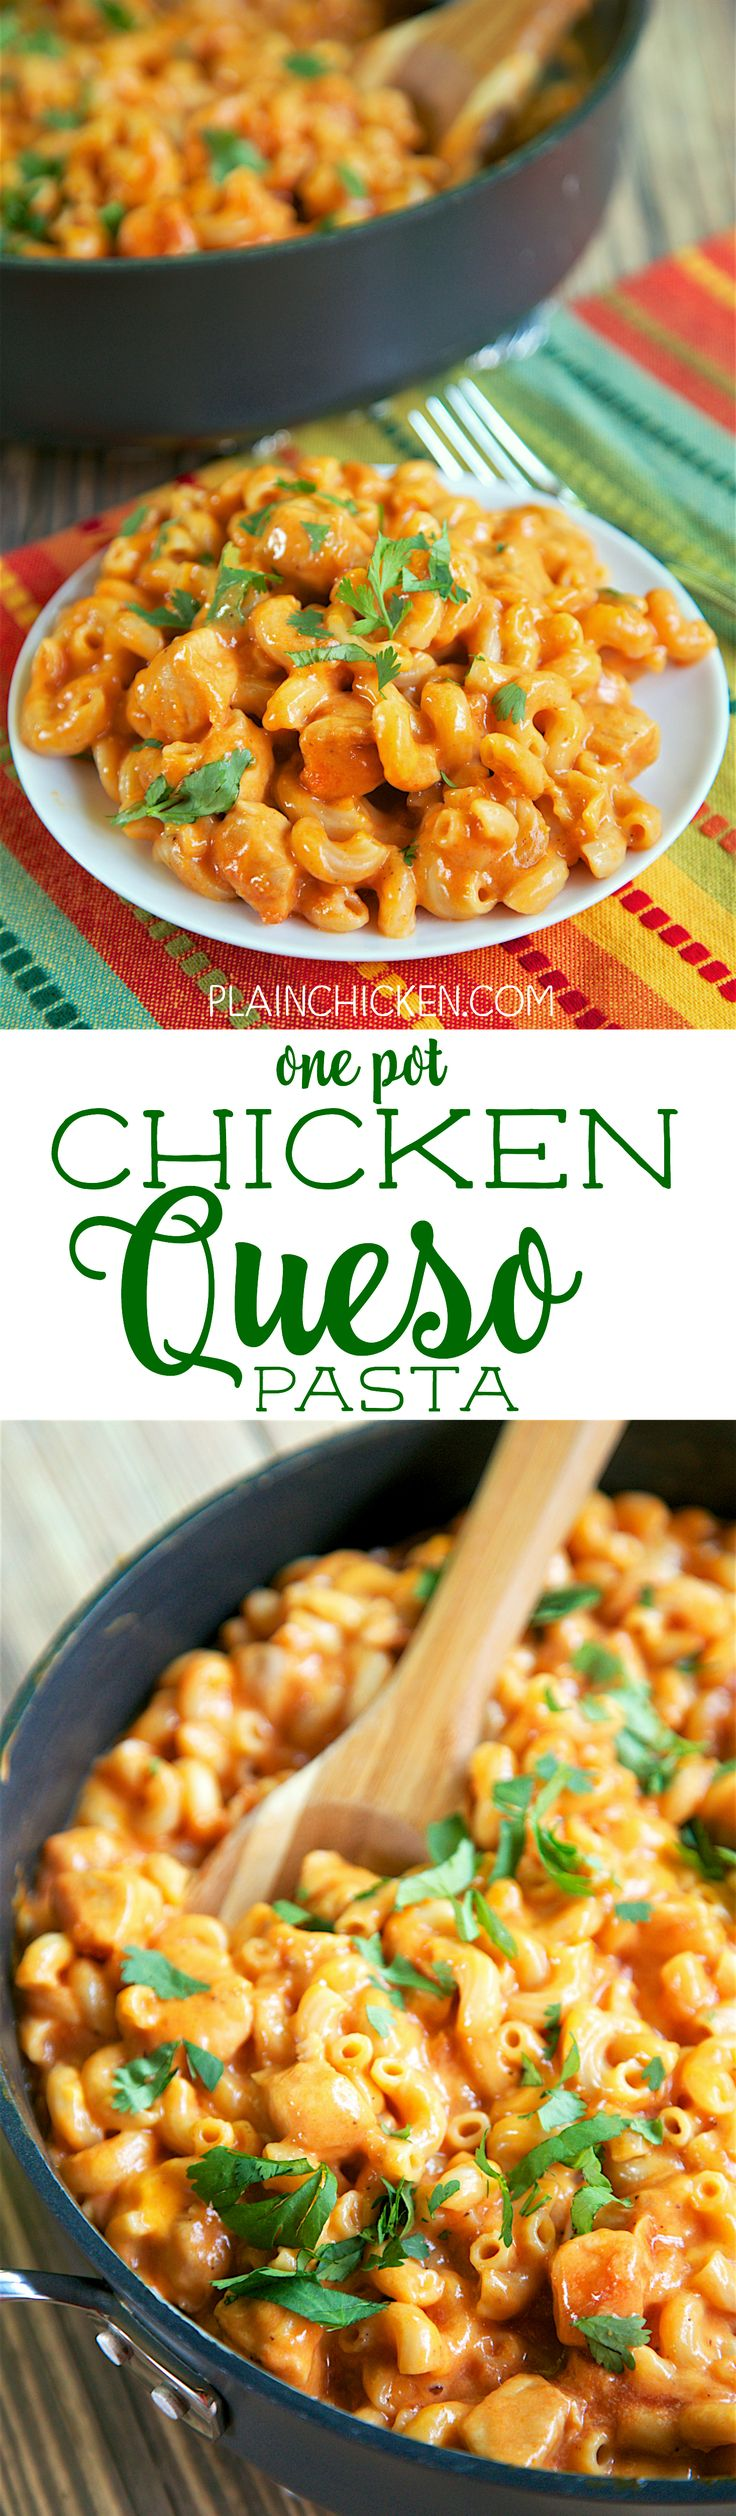 One Pot Chicken Queso Pasta - everything cooks in the same pan, even the pasta! Only 6 ingredients! Chicken, taco seasoning, chicken broth, salsa, pasta and velveeta. Everyone cleaned their plates! Quick, easy Mexican recipe that is ready in 20 minutes!